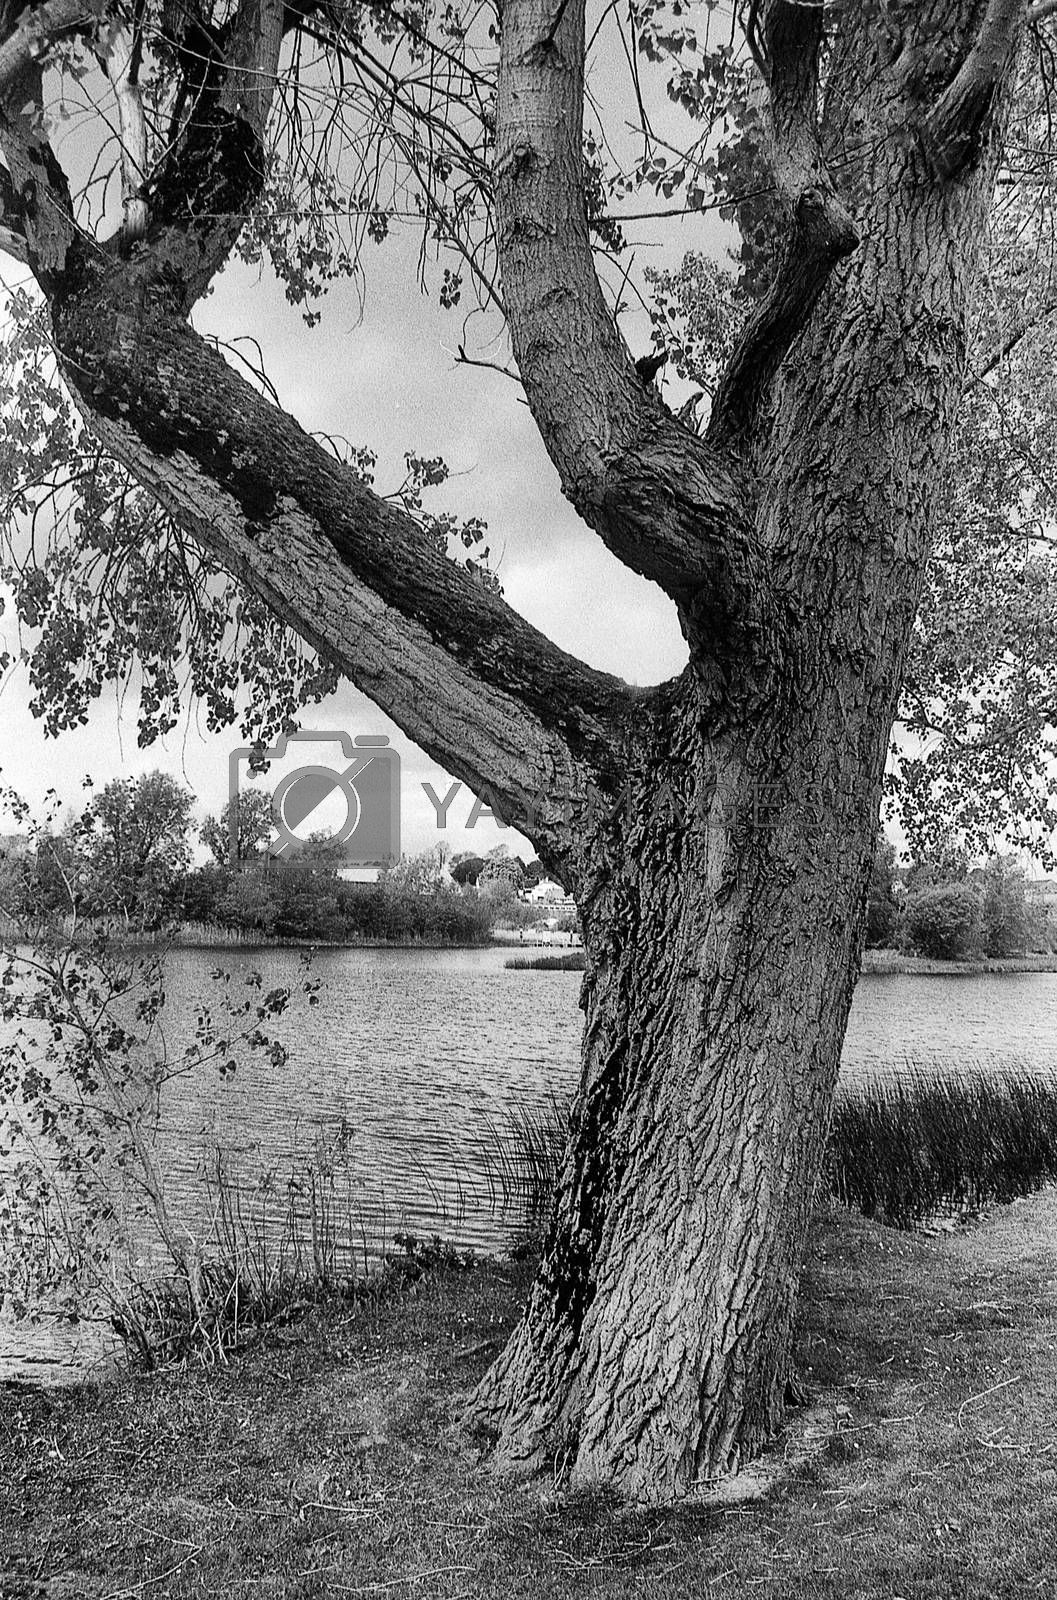 the lonley tree beside the river, view of River Erne, Northern Ireland, in black and white